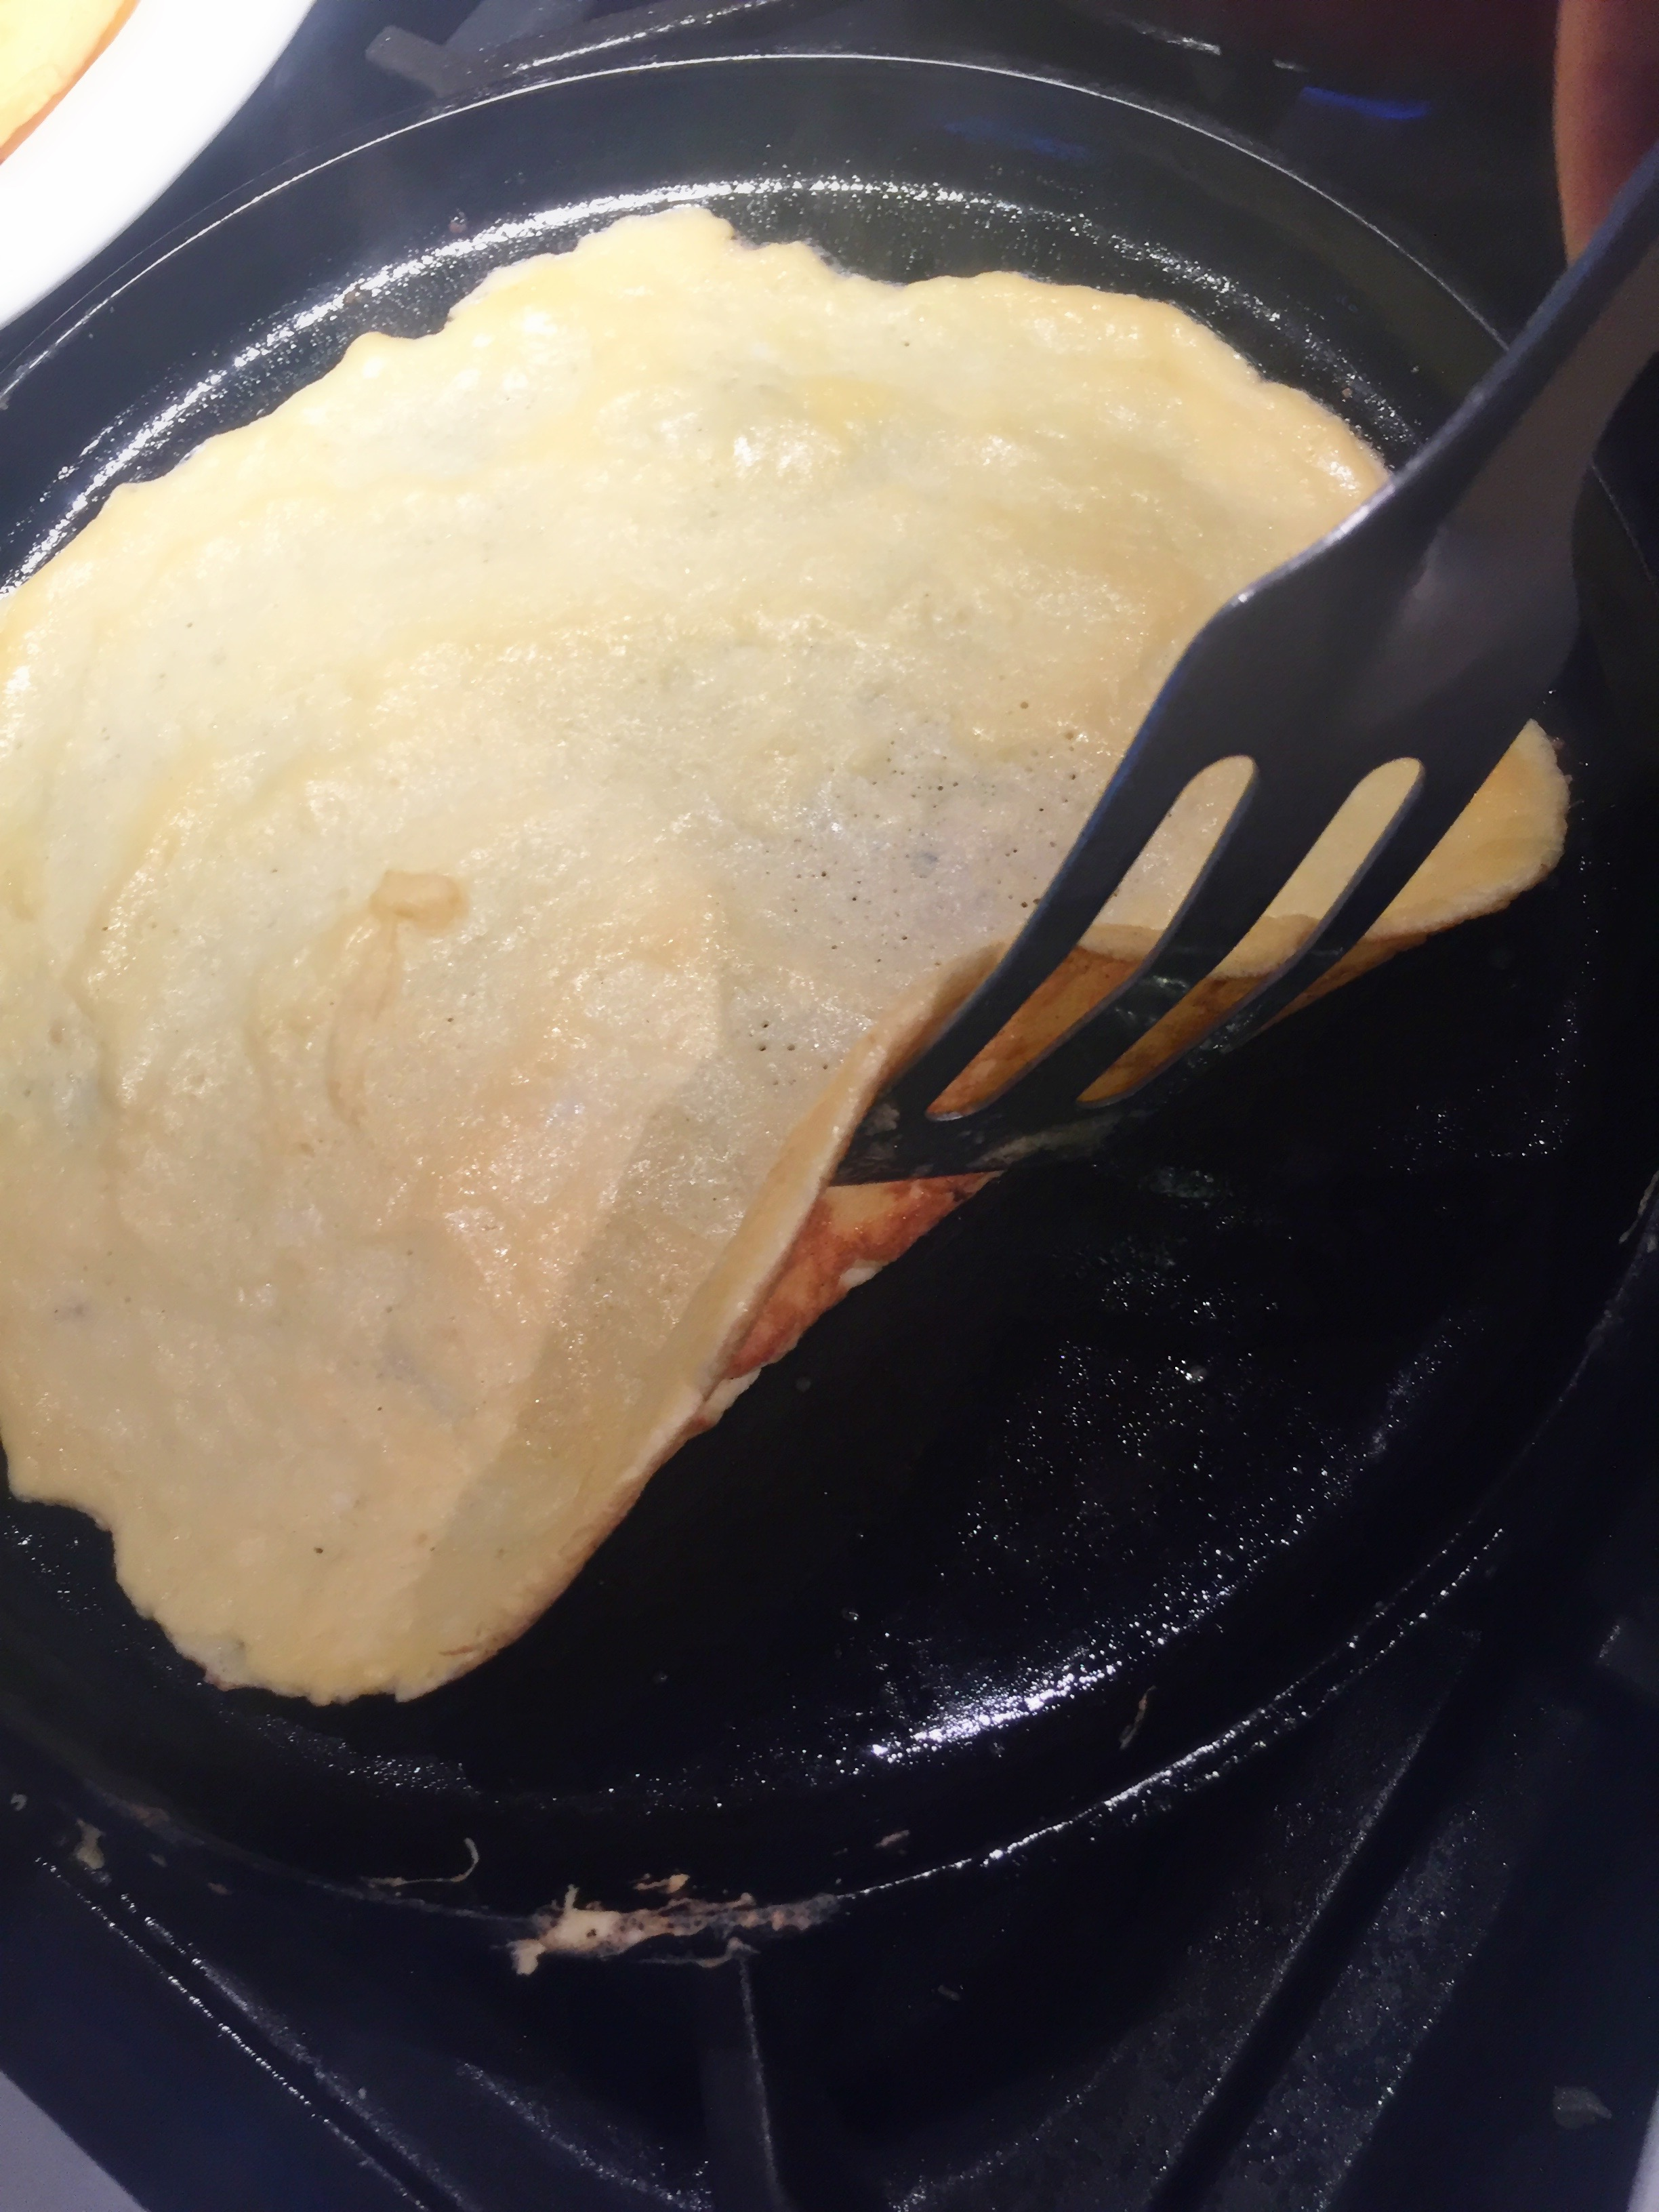 GAPS Wraps or Tortillas, Quirky Cooking